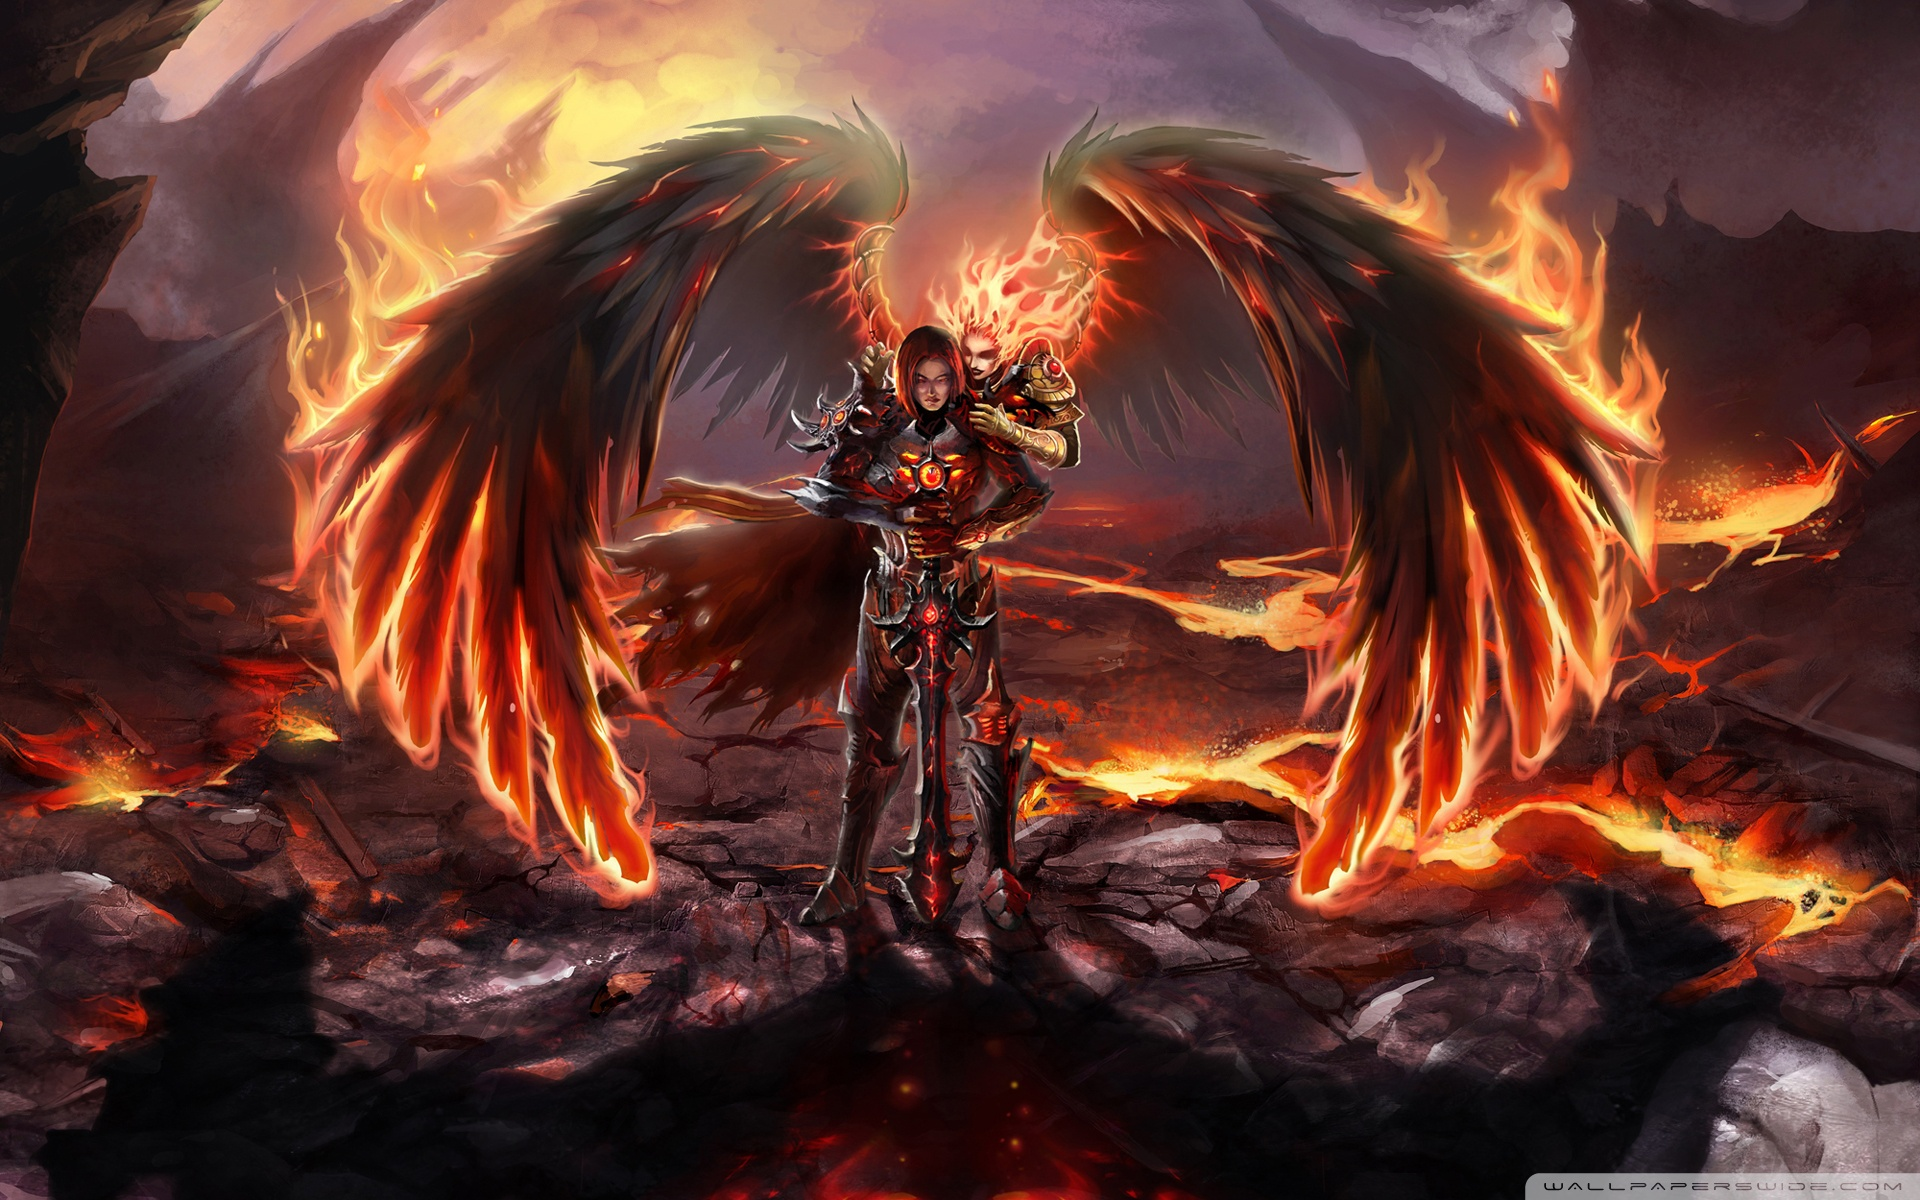 Fantasy Angel Warrior Action Adventure Cg Dark Devil Enemy Evil 749027 1950